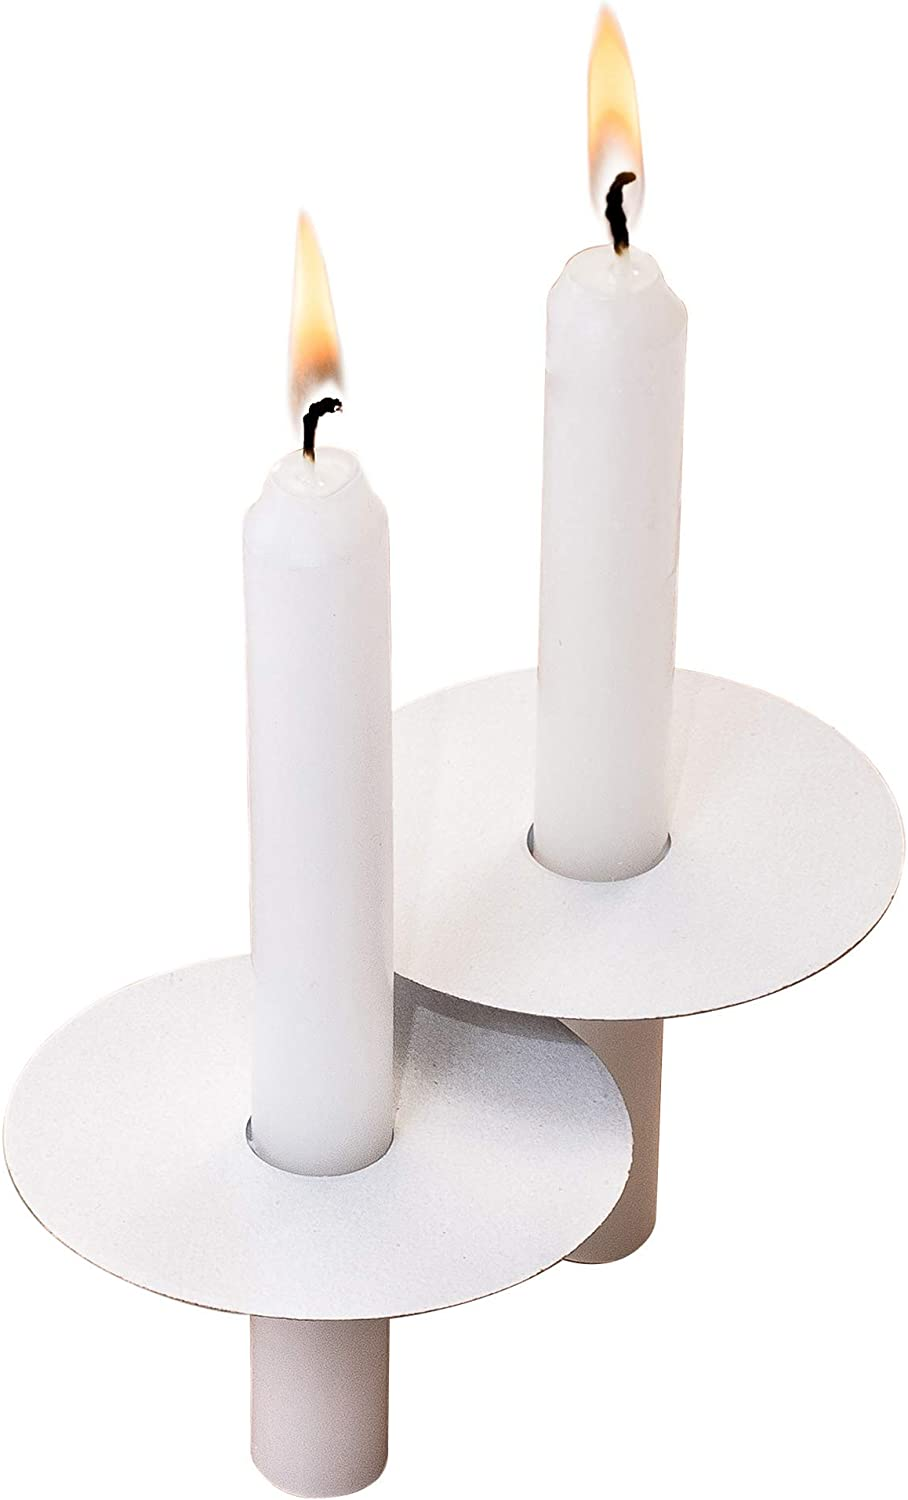 Exquizite 104 Church Candles with Drip Protectors for Christmas Eve Candlelight Service, Easter Service, Vigil Service, Memorial Service and Devotional Service, Unscented White 5